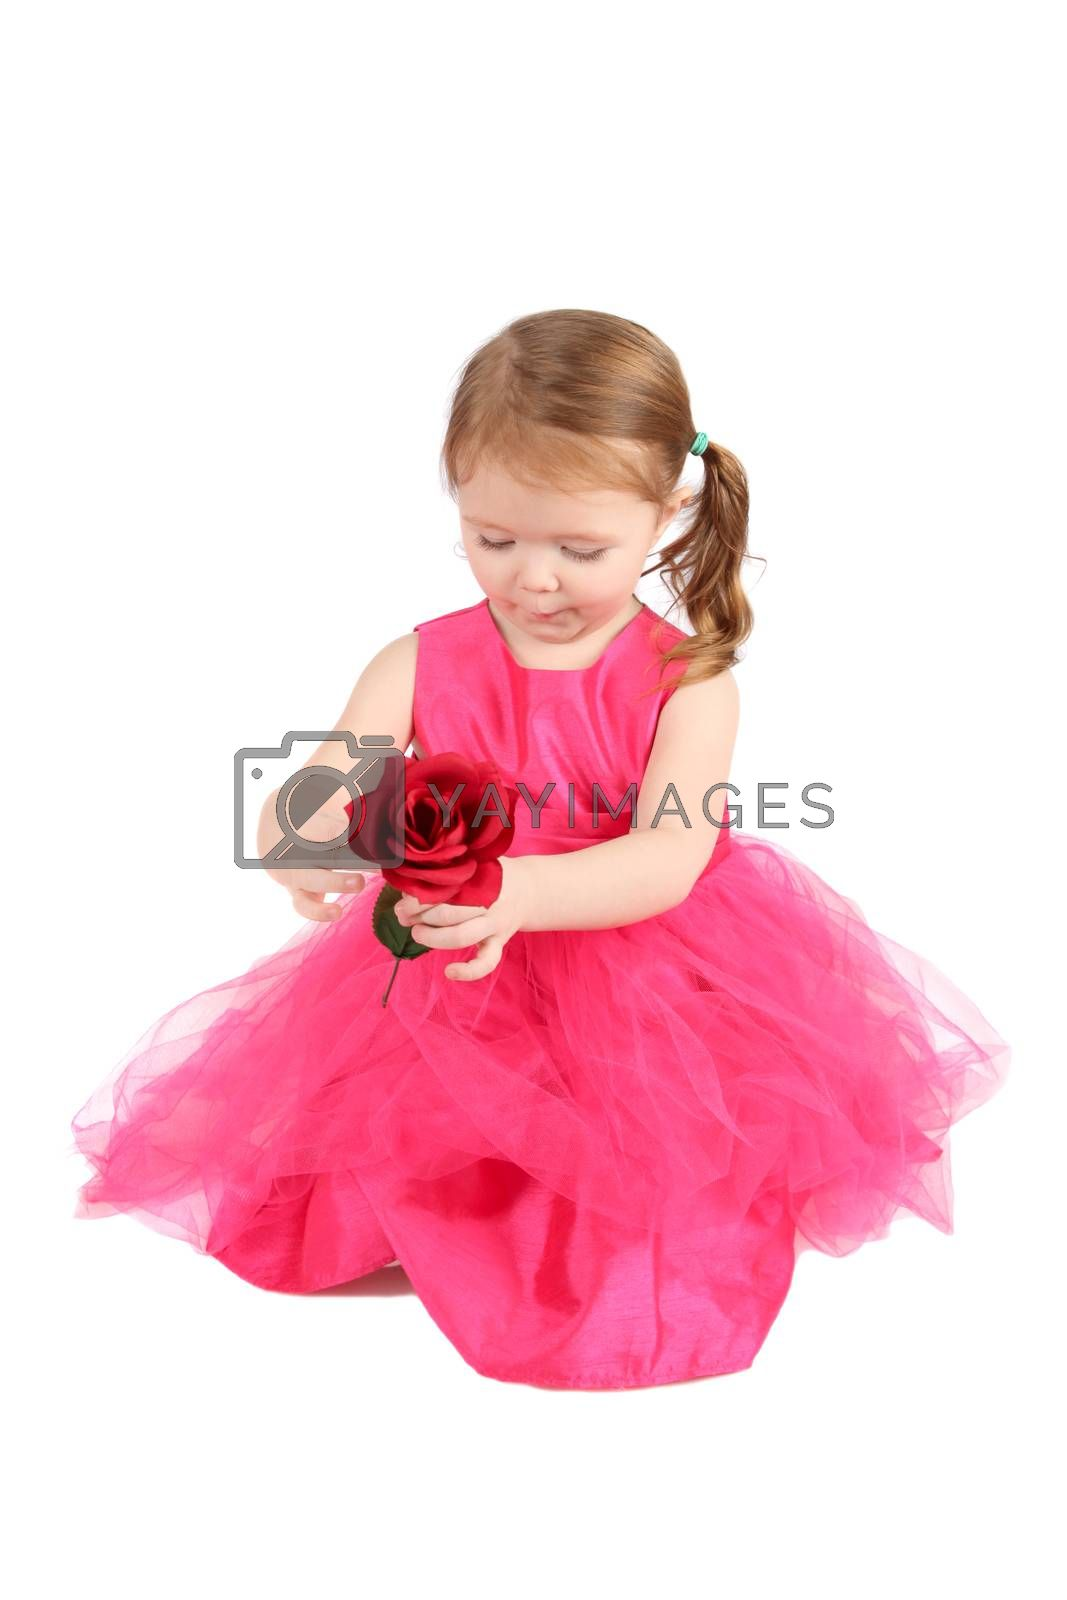 Valentine girl holding a red rose wearing pink